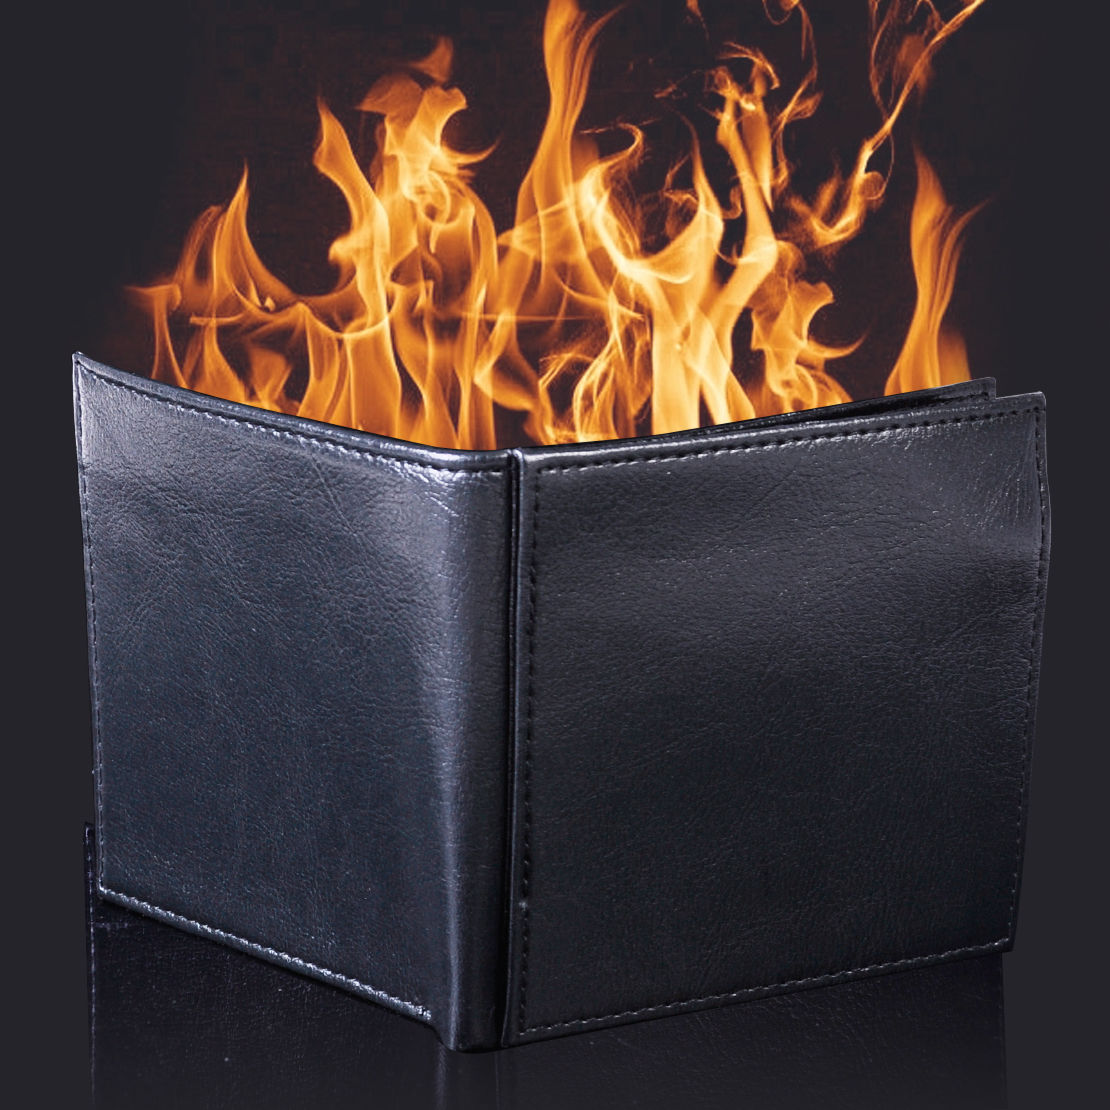 Magic Flame Fire Wallet Man Made Leather Trick Performance Pranks Magic Wallet Toy Jokes Stage Performance Tricks Wallet usb battery bank charger